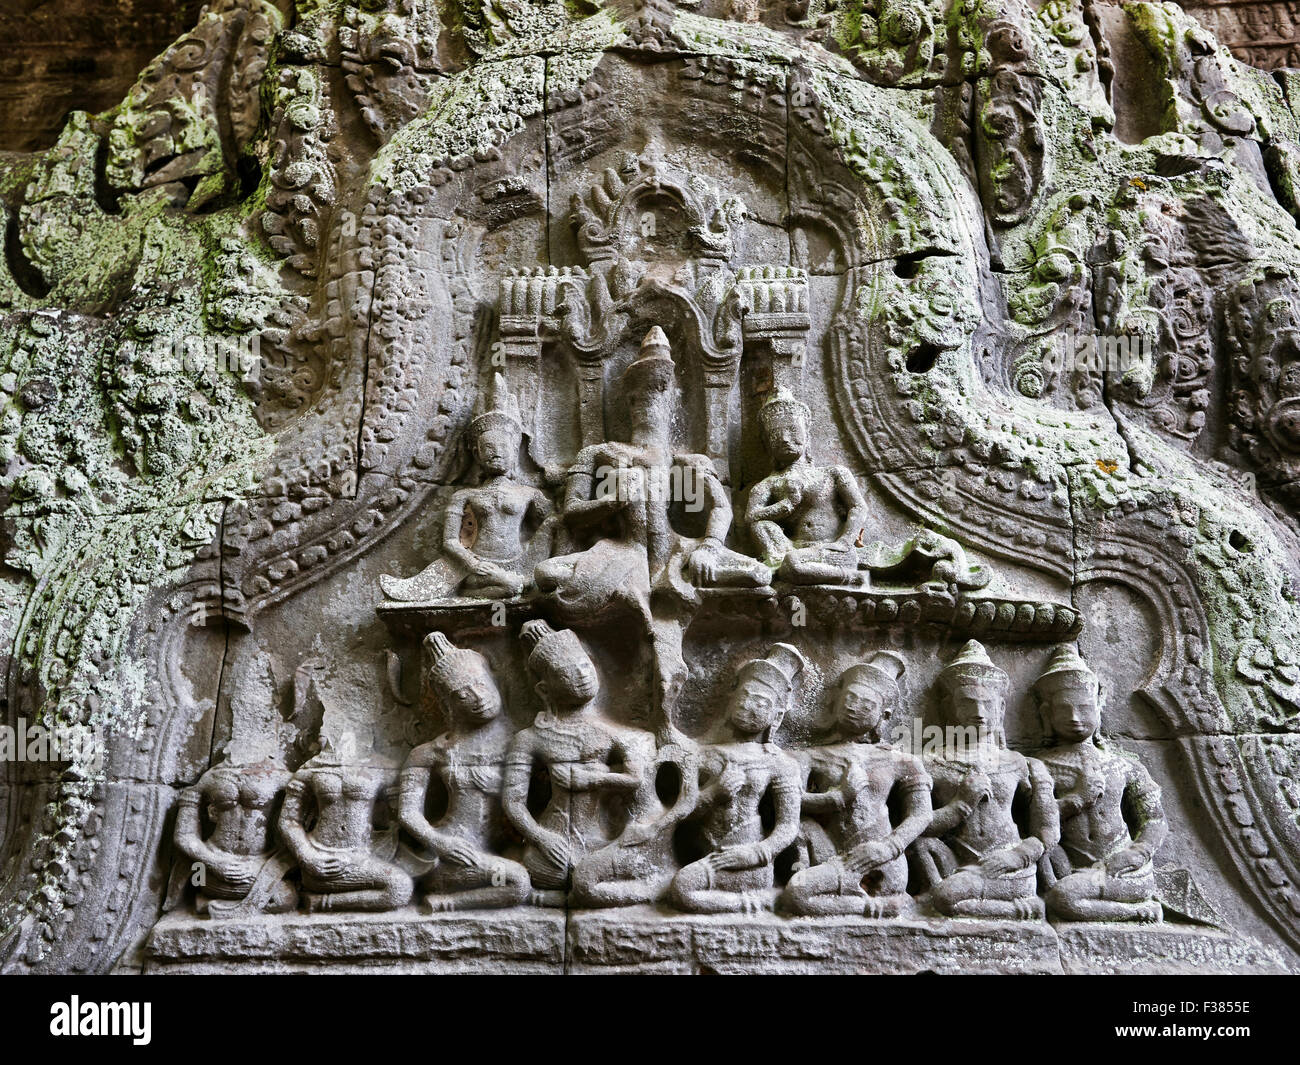 Stone carving in Ta Prohm temple. Angkor Archaeological Park, Siem Reap Province, Cambodia. - Stock Image